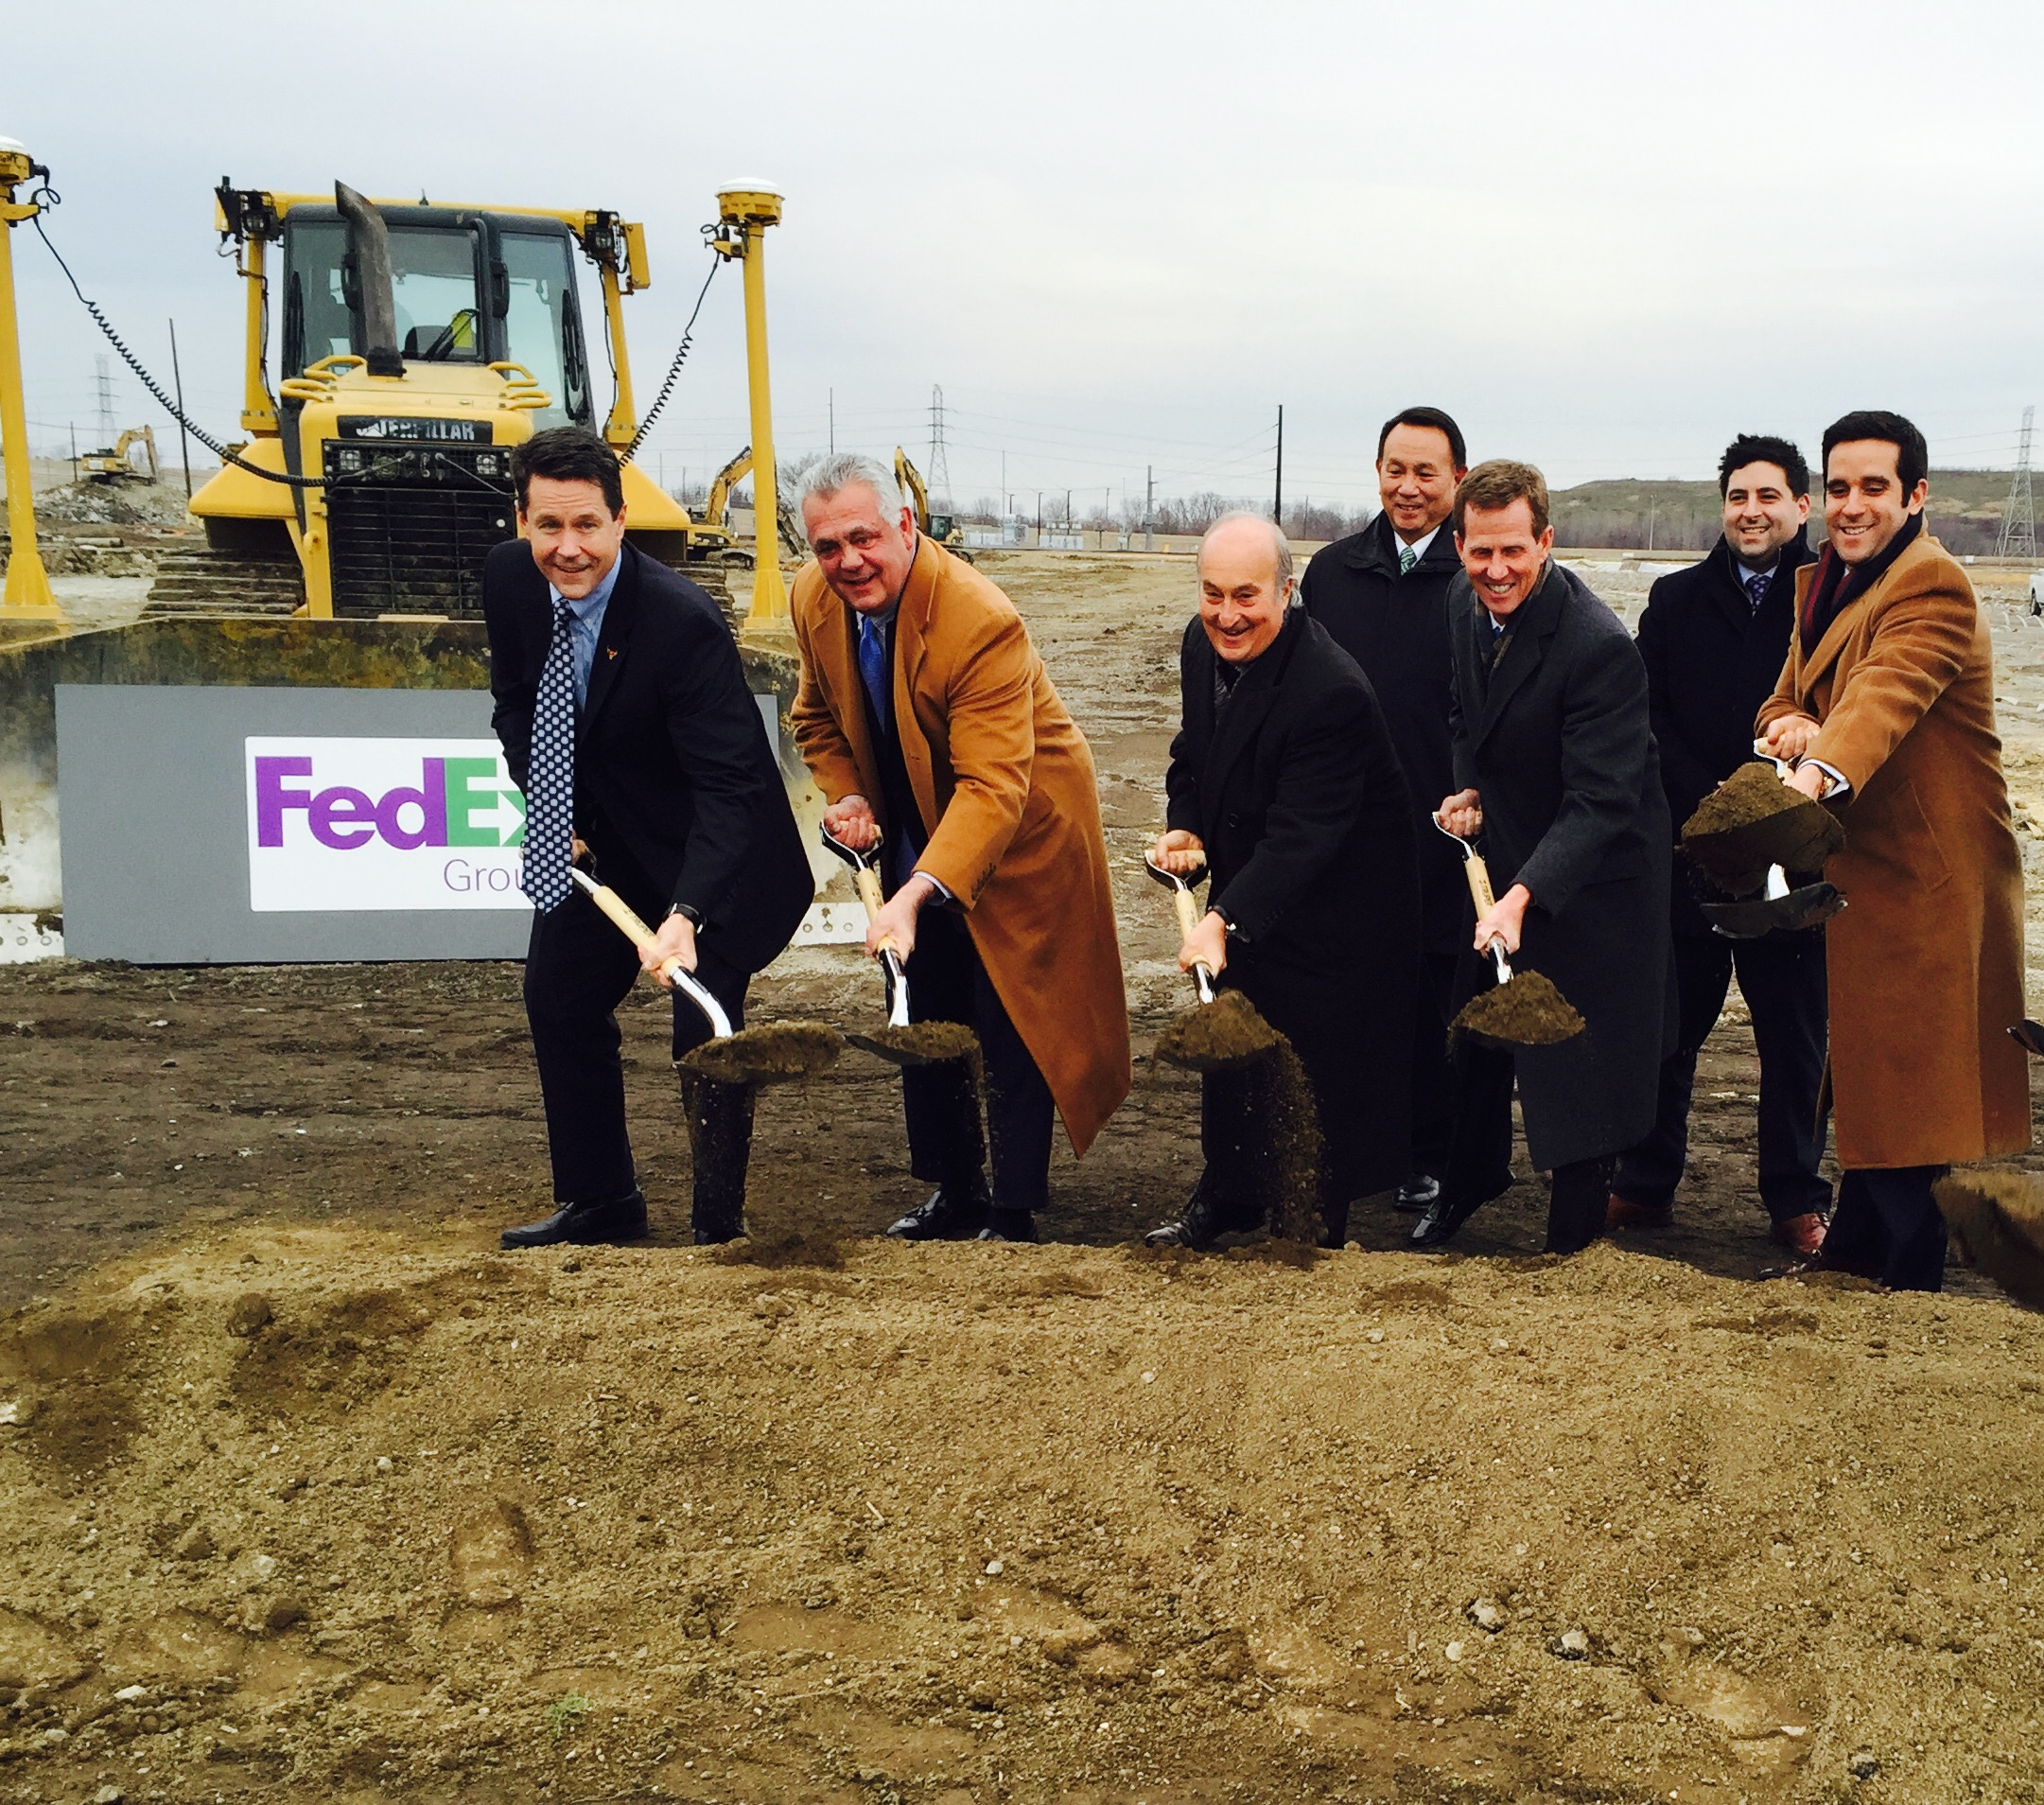 New FedEx Ground distribution centre planned for Baltimore